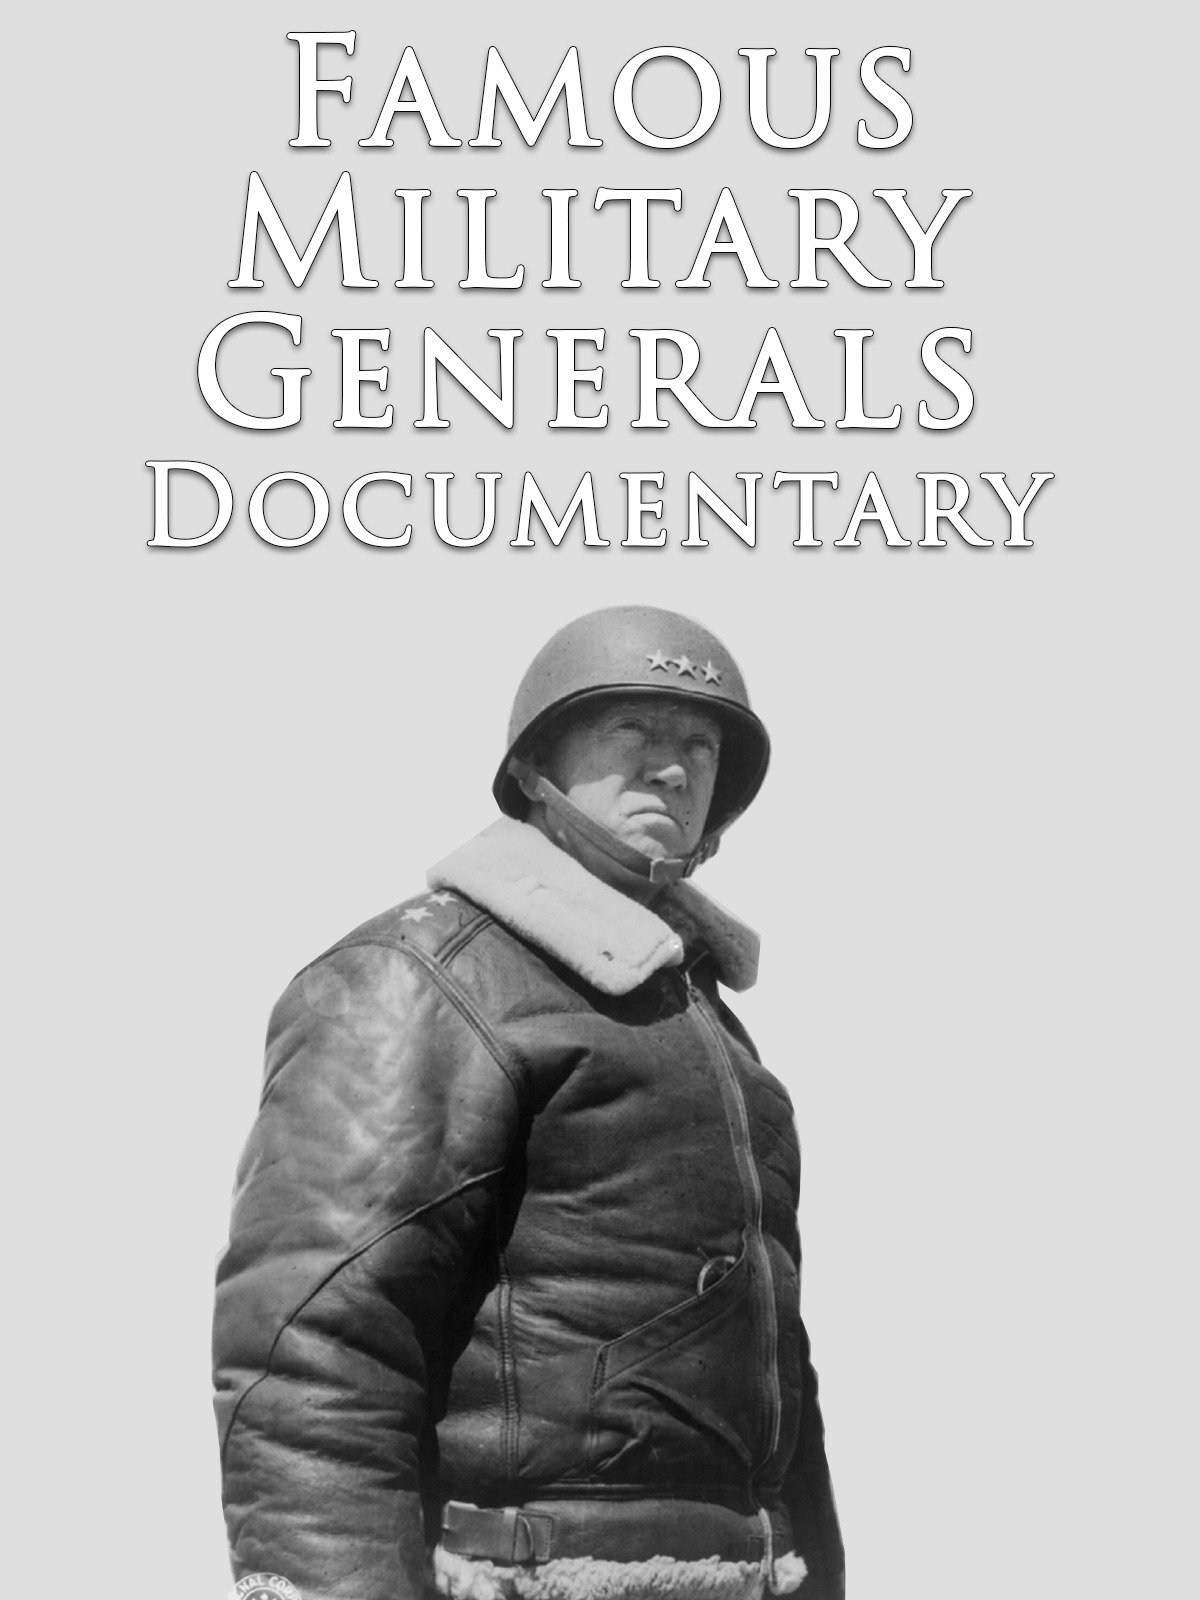 Famous Military Generals Documentary